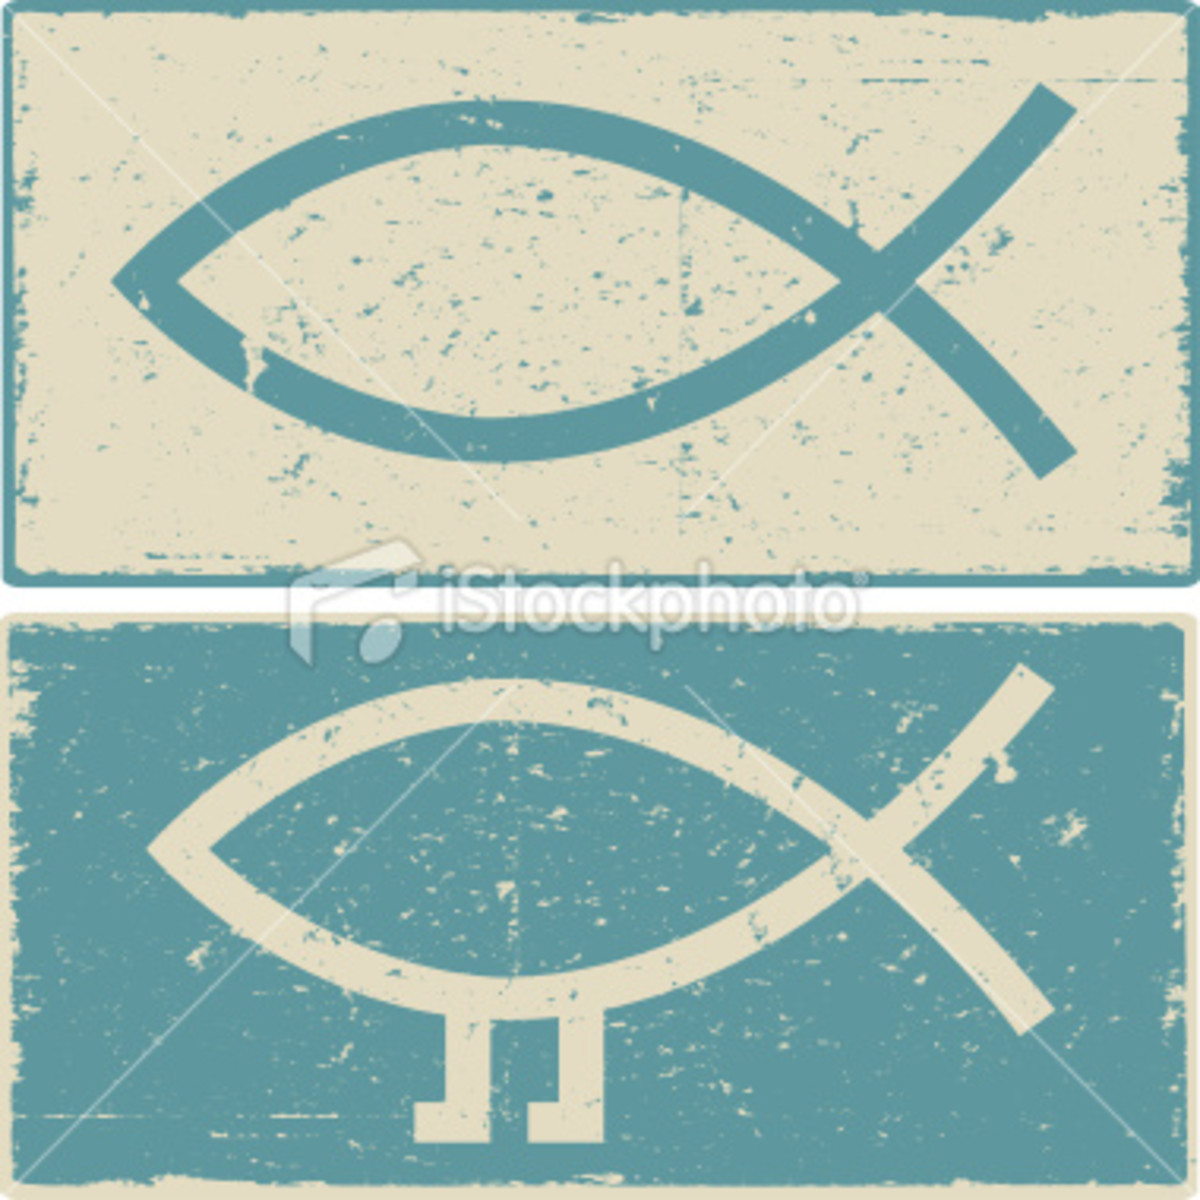 These two symbols, one a Christian symbol of a fish and the other, a modern adaptation to indicate Darwinian evolution.